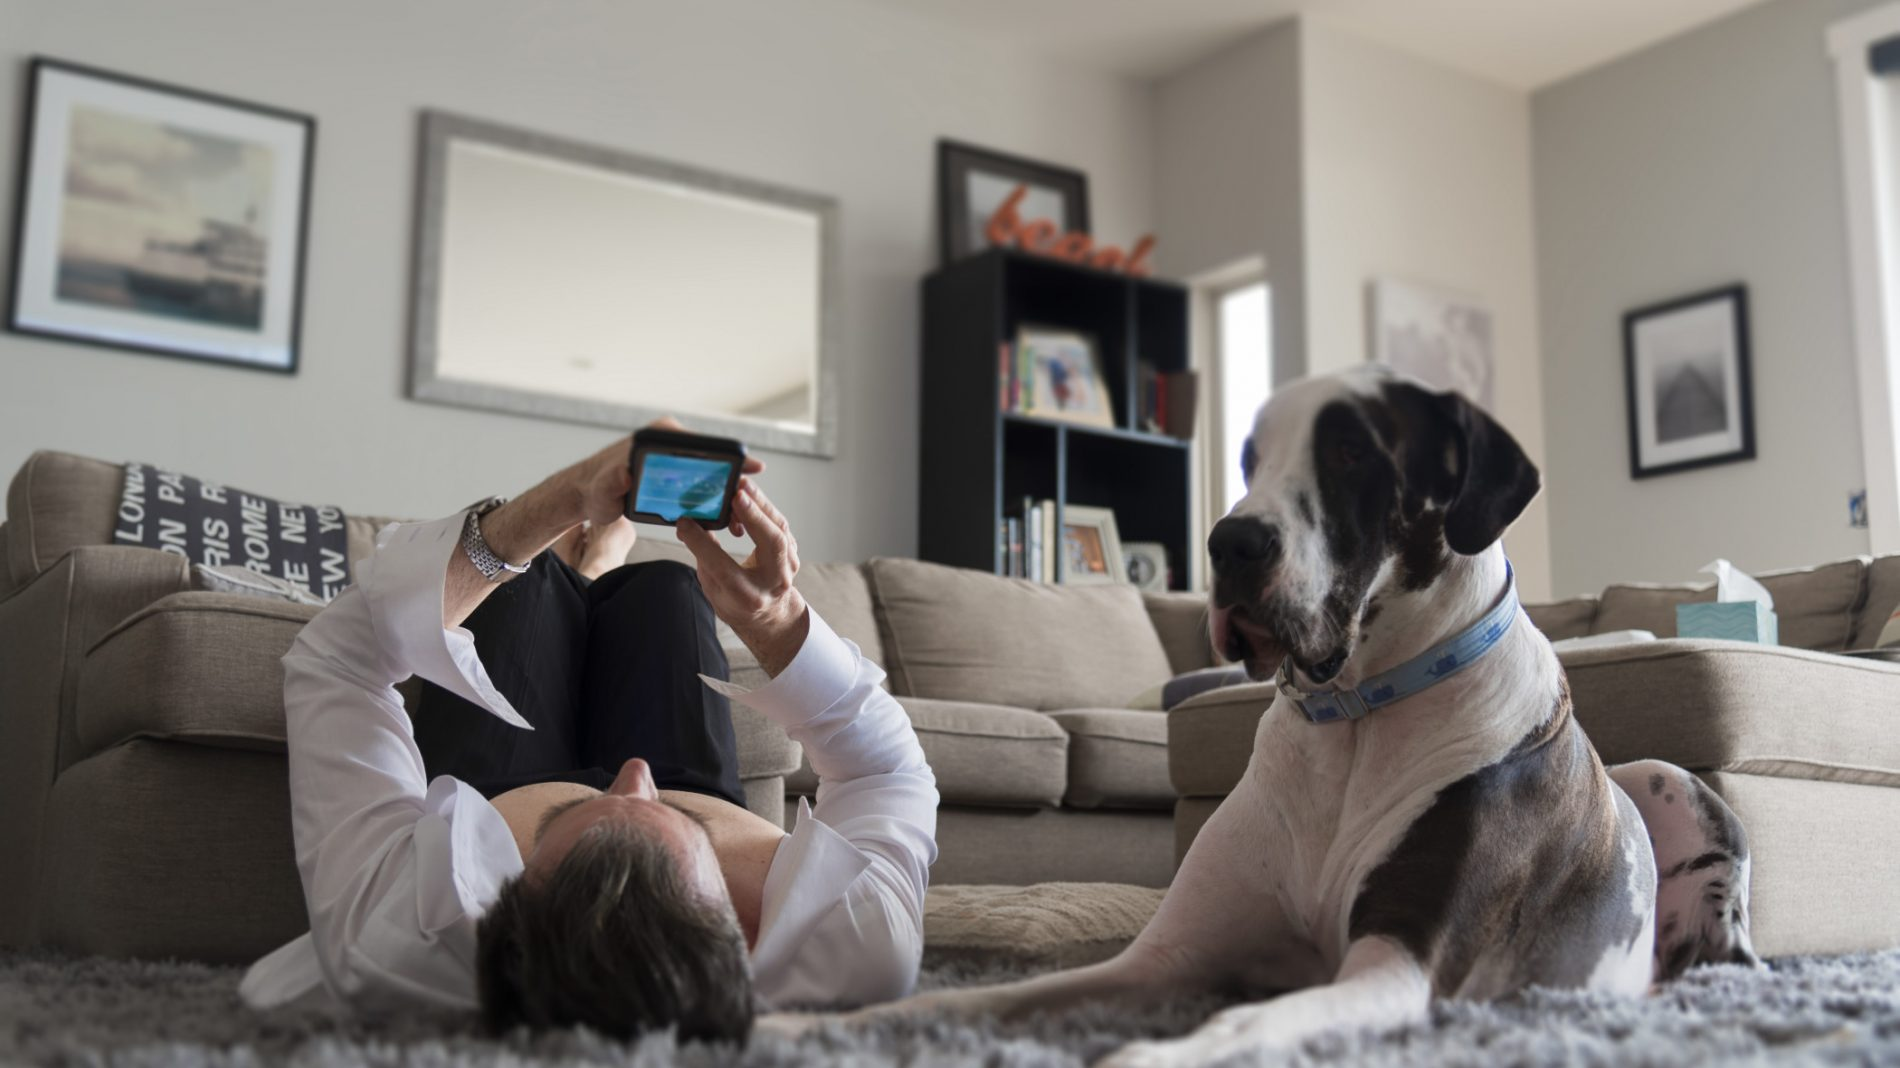 man-laying-on-home-interior-carpet-rug-using-his-smart-phone-watching-video-with-large-great-dane-dog_t20_x64b0g